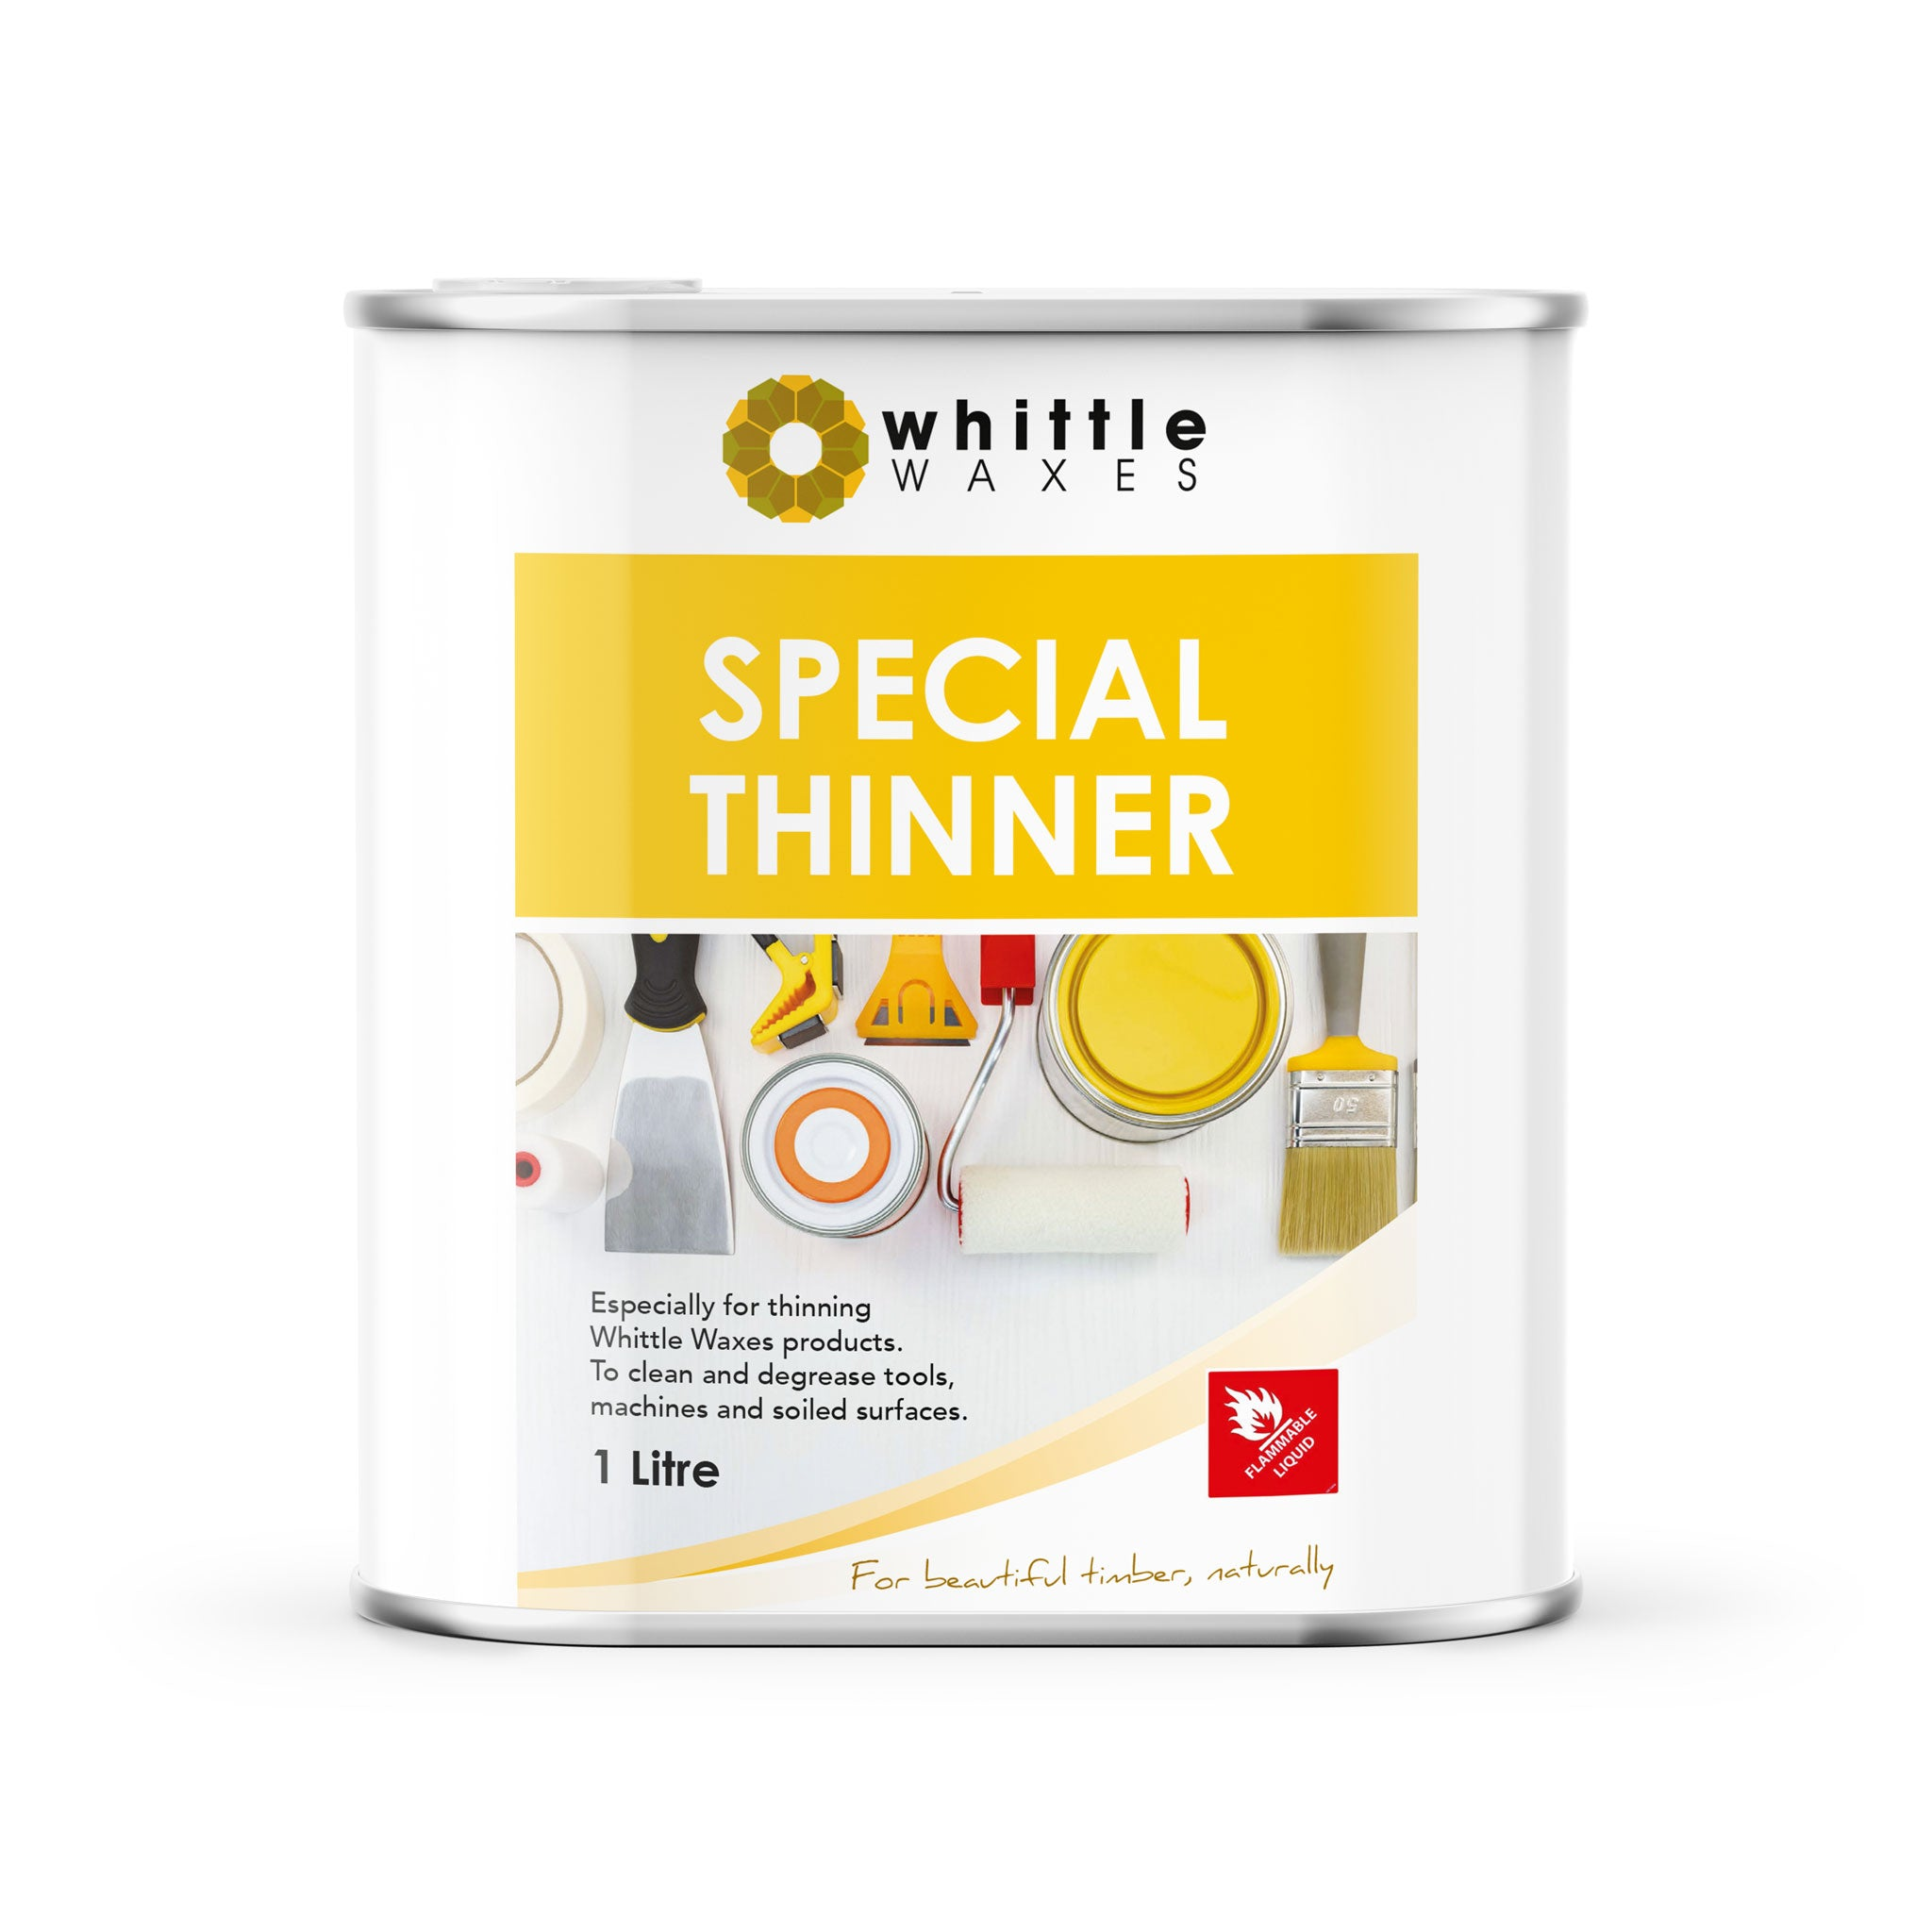 Whittle Waxes Special Thinners - for cleaning and degreasing - 1 litre